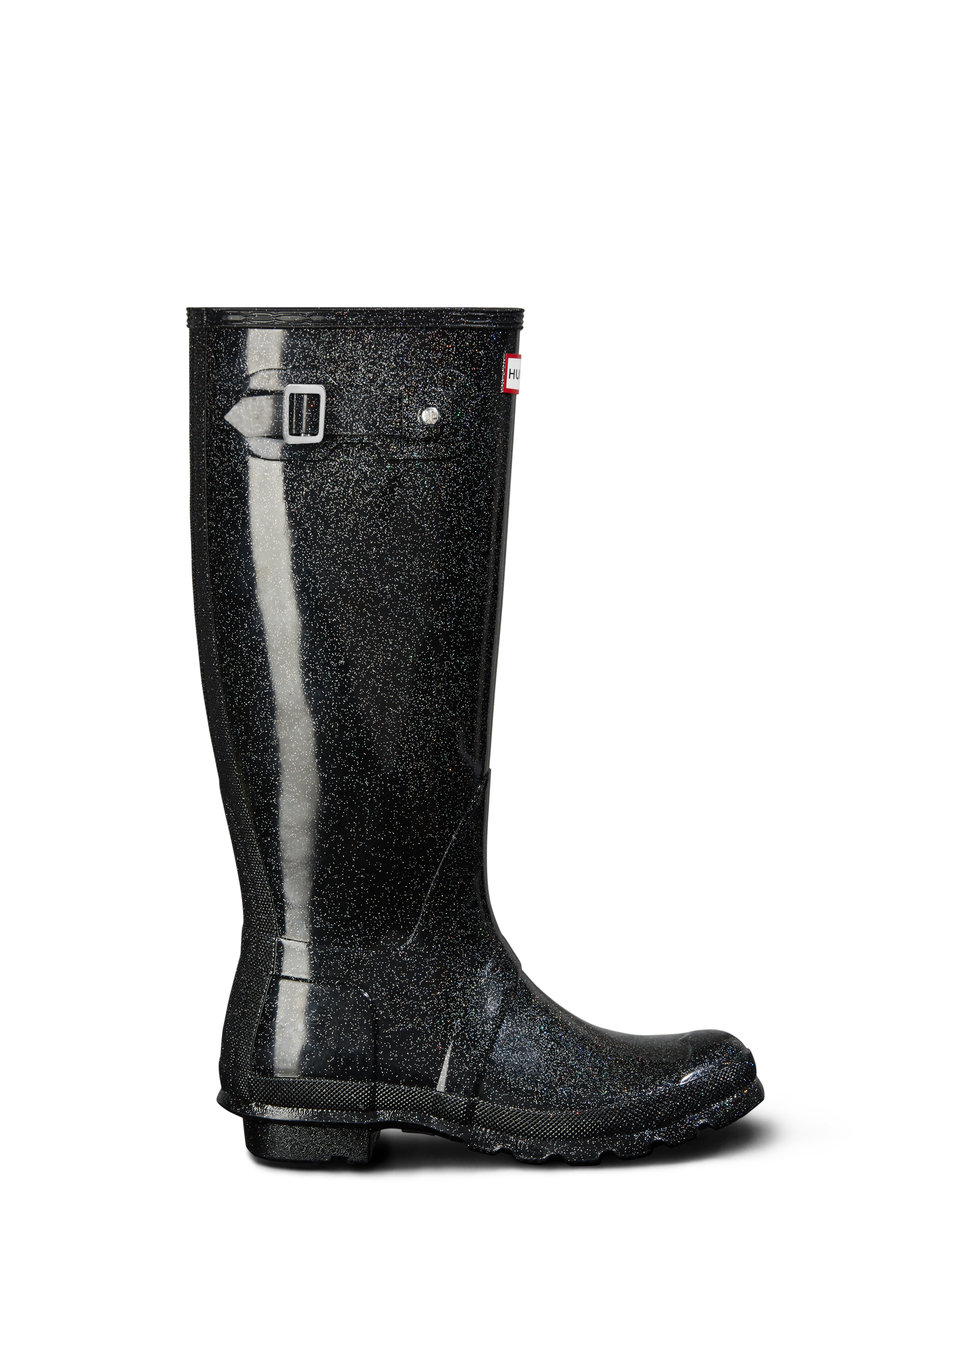 46_STARCLOUD TALL BOOT BY HUNTER ORIGINAL - WFT2000RGT-BML 549 pln.jpg